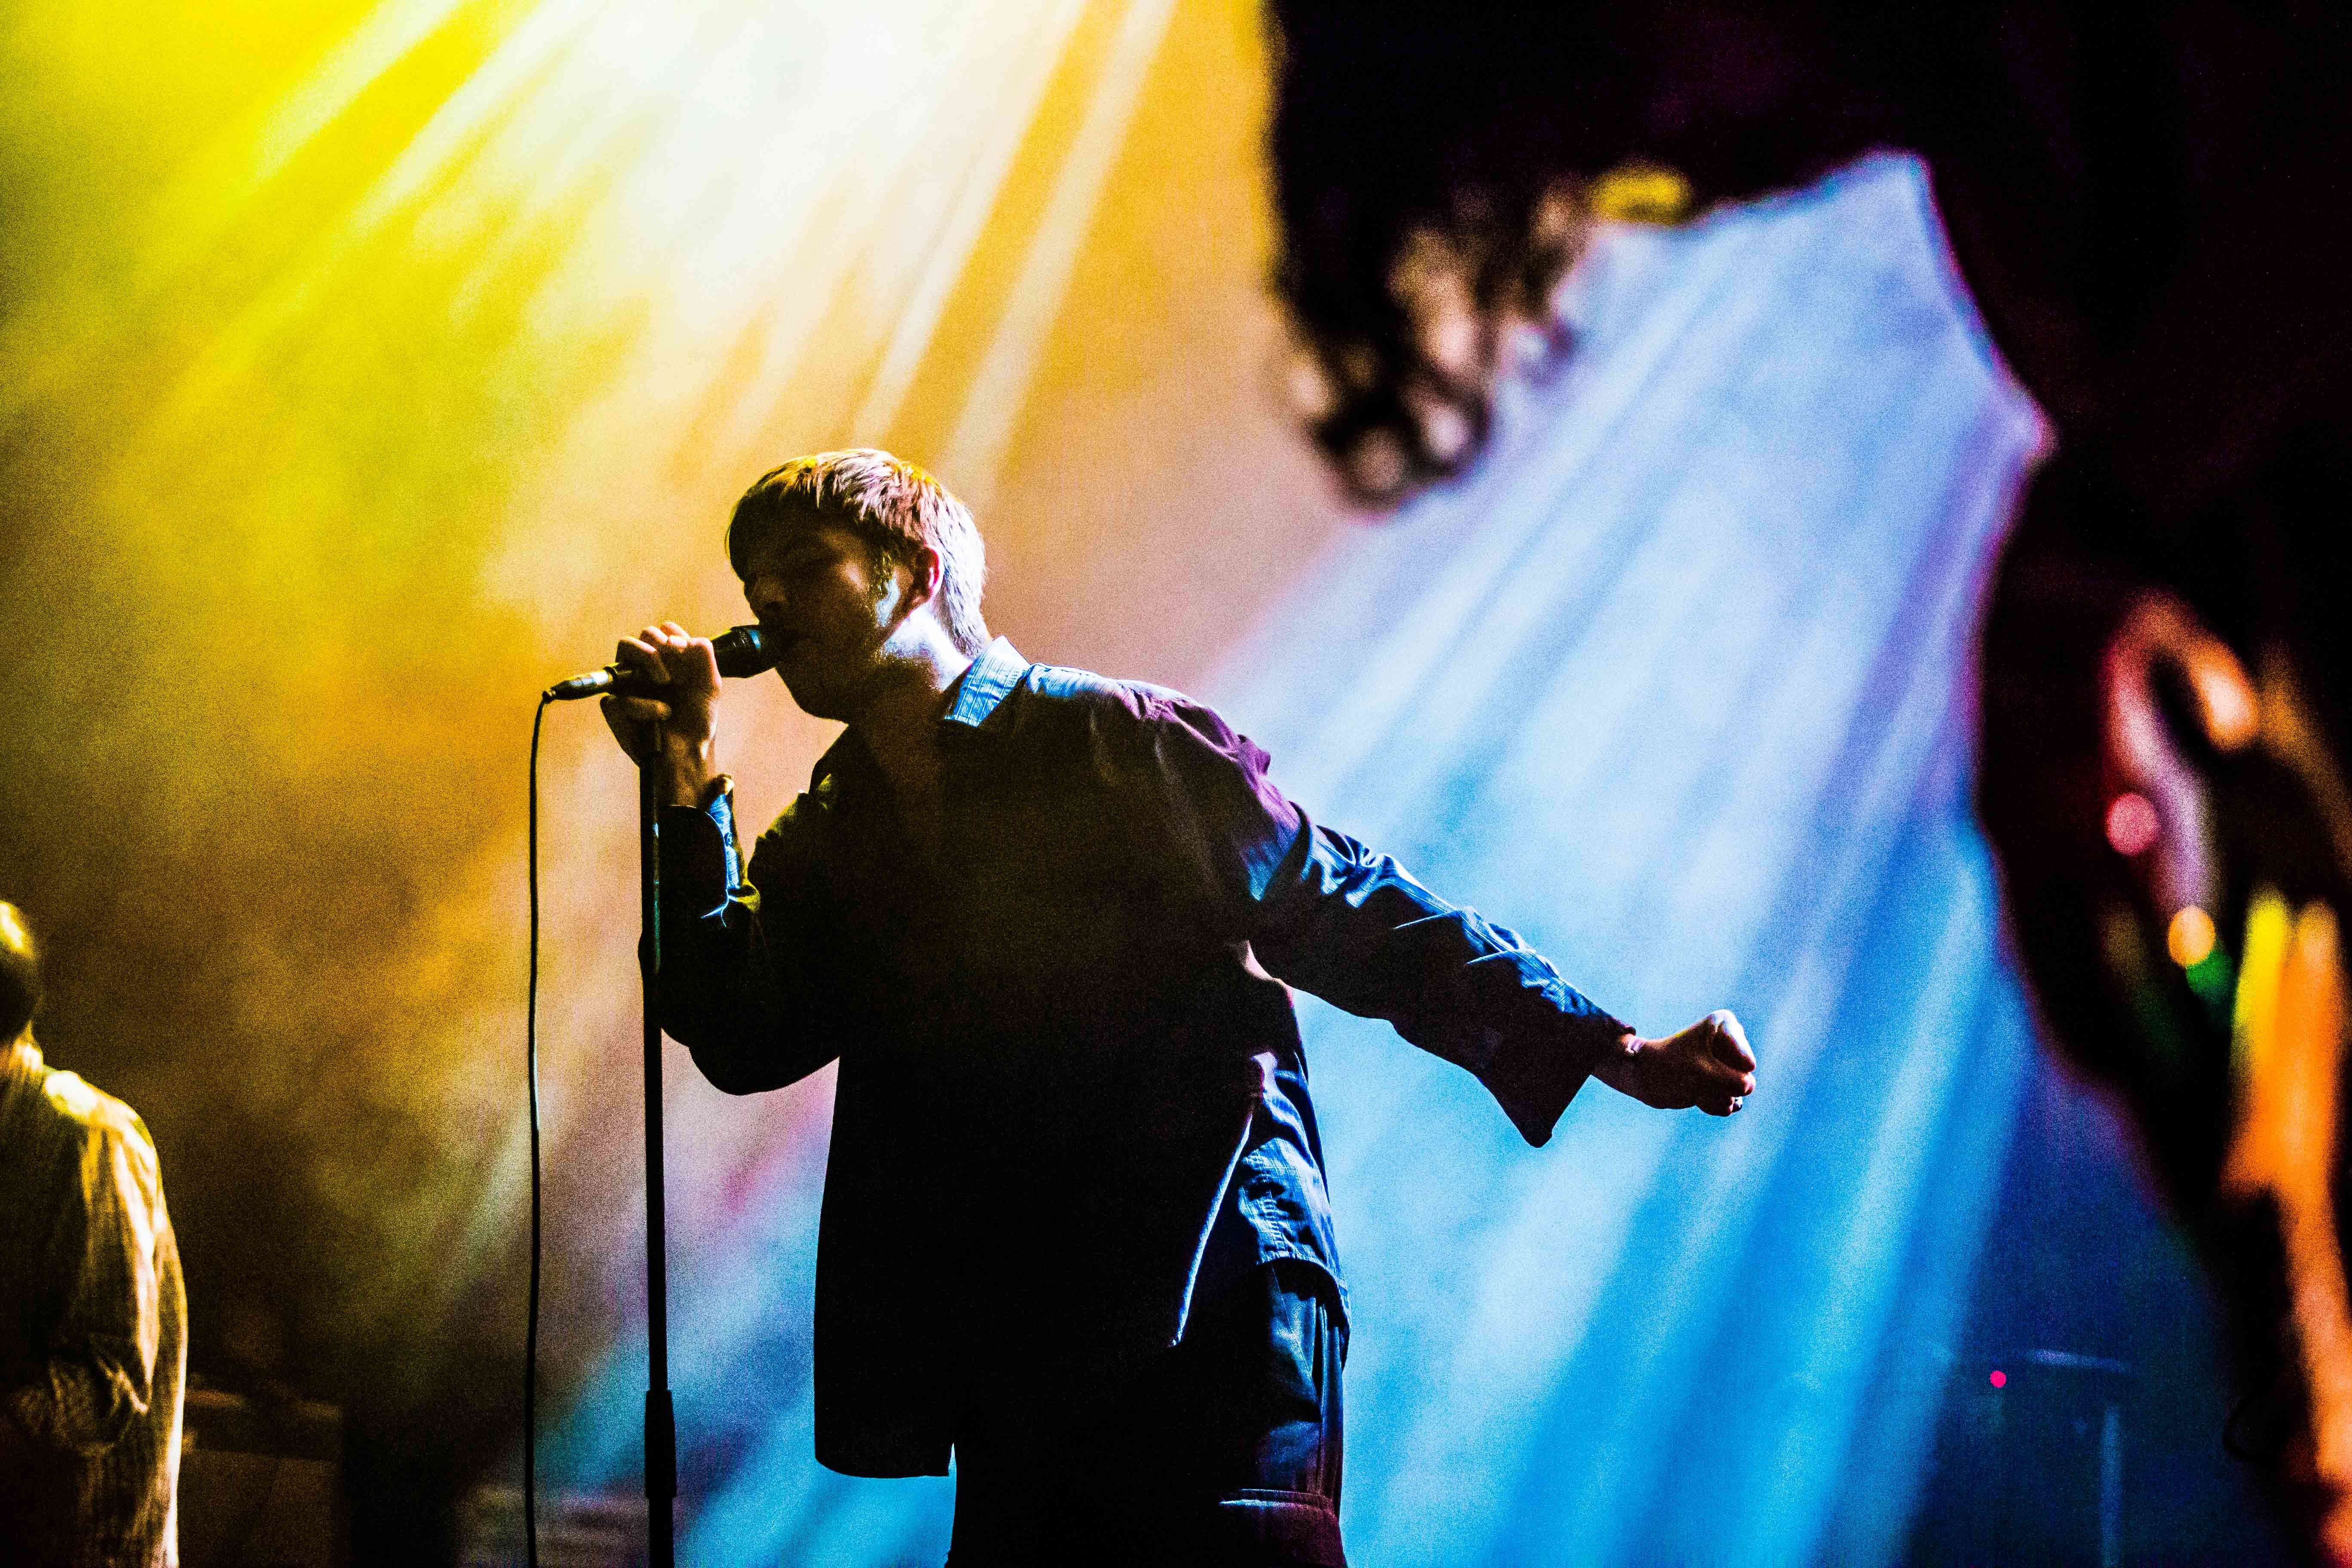 The National, Whitney and Spirtualized bring the magic to Ypsigrock 2019